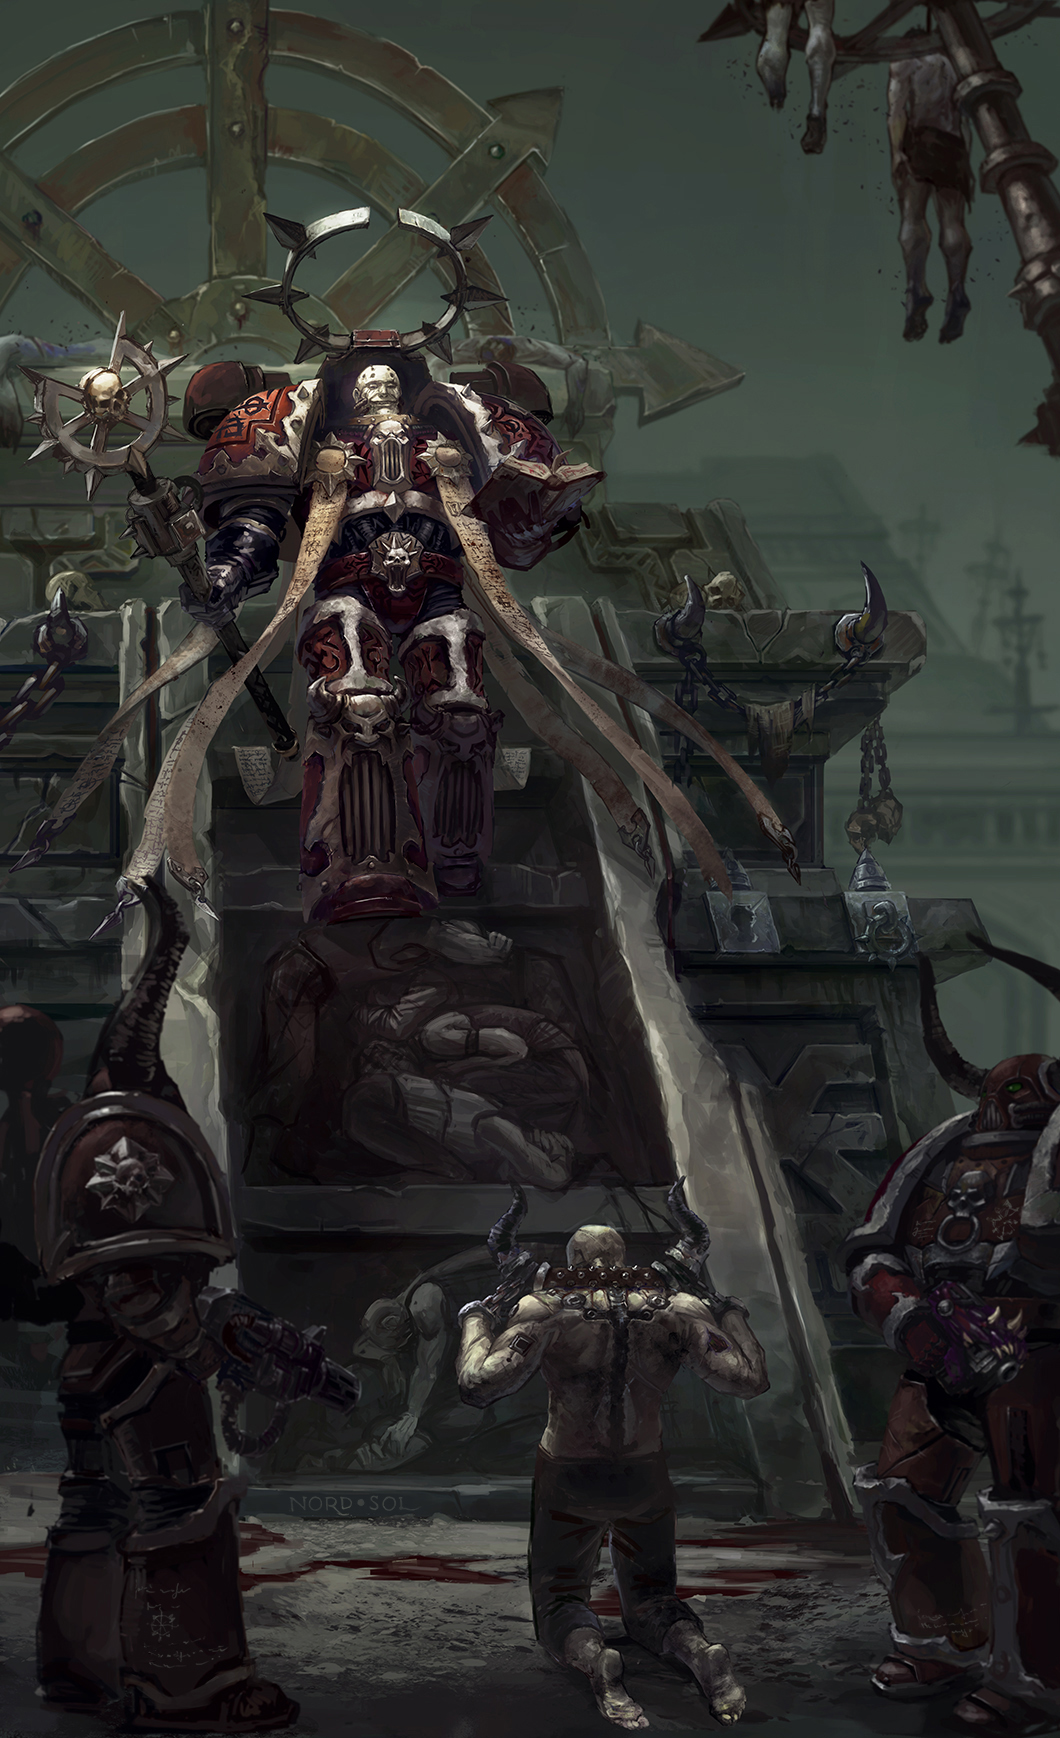 [W40K] Collection d'images : Space Marines du Chaos - Page 6 Dark_apostle_by_nord_sol-d80xm36